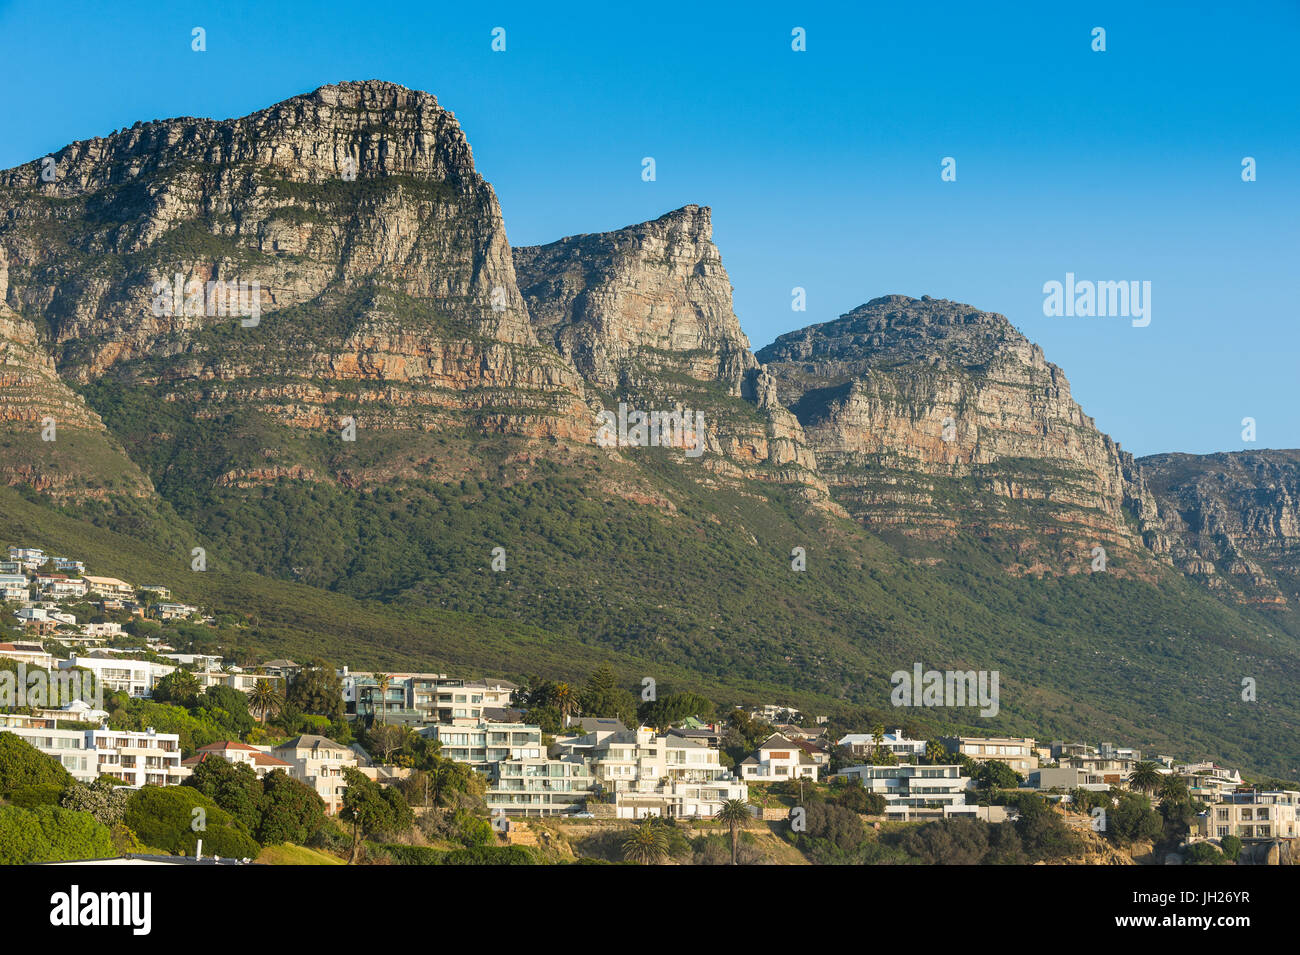 Camps Bay with the Table Mountain in the background, suburb of Cape Town, South Africa, Africa - Stock Image